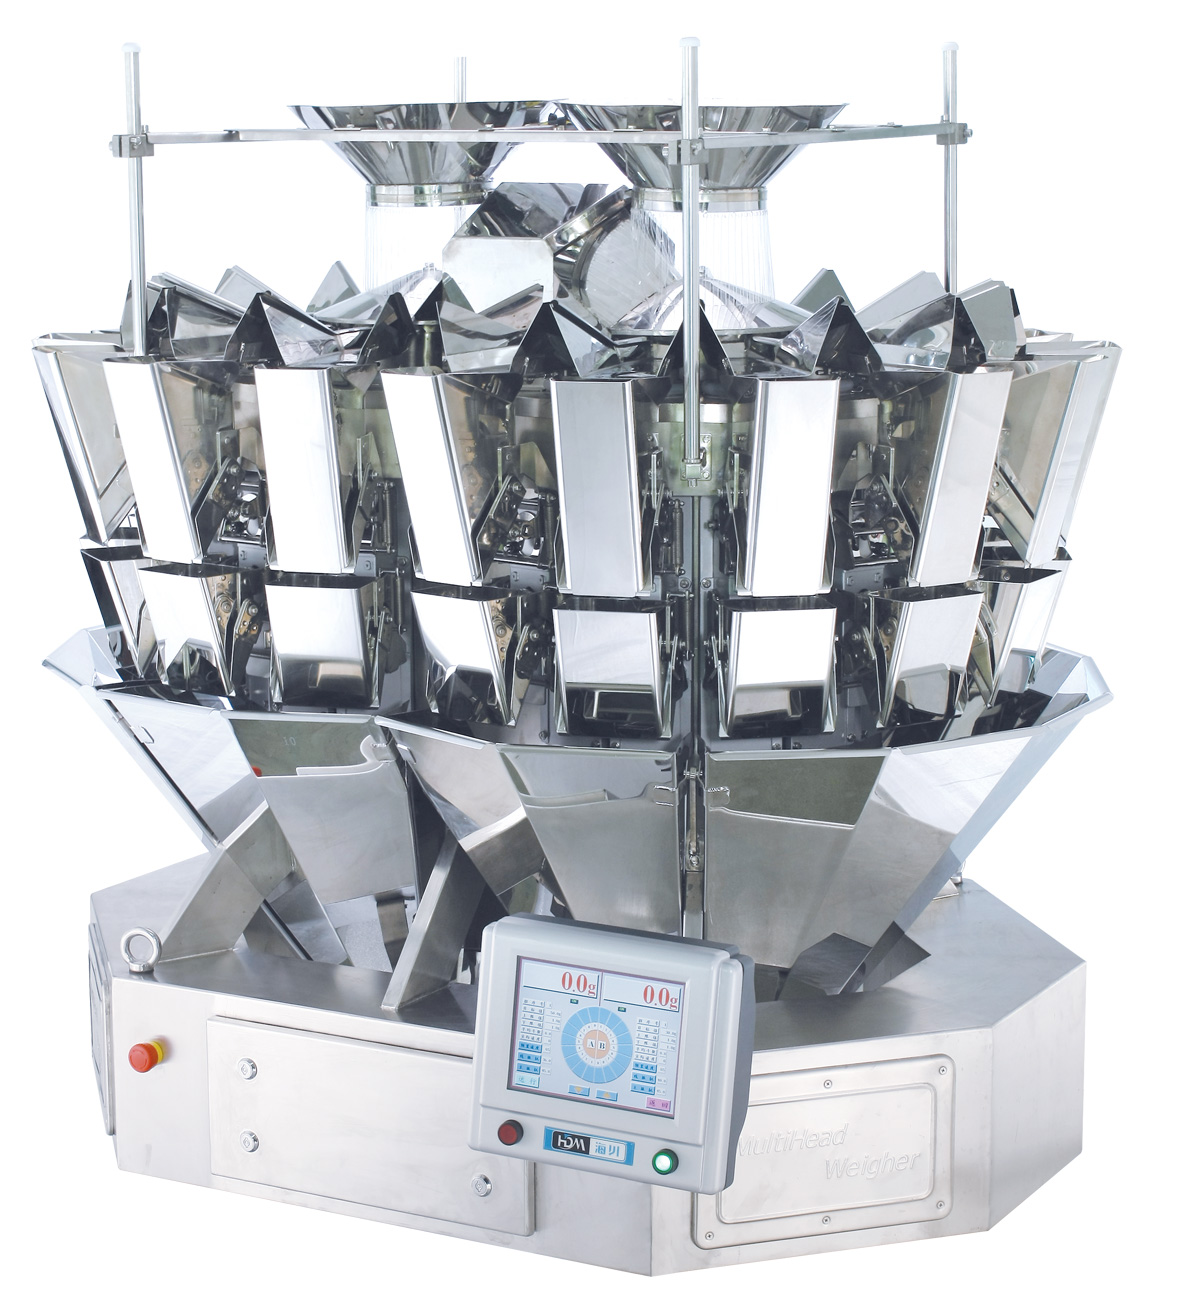 18 heads weigher touch screen